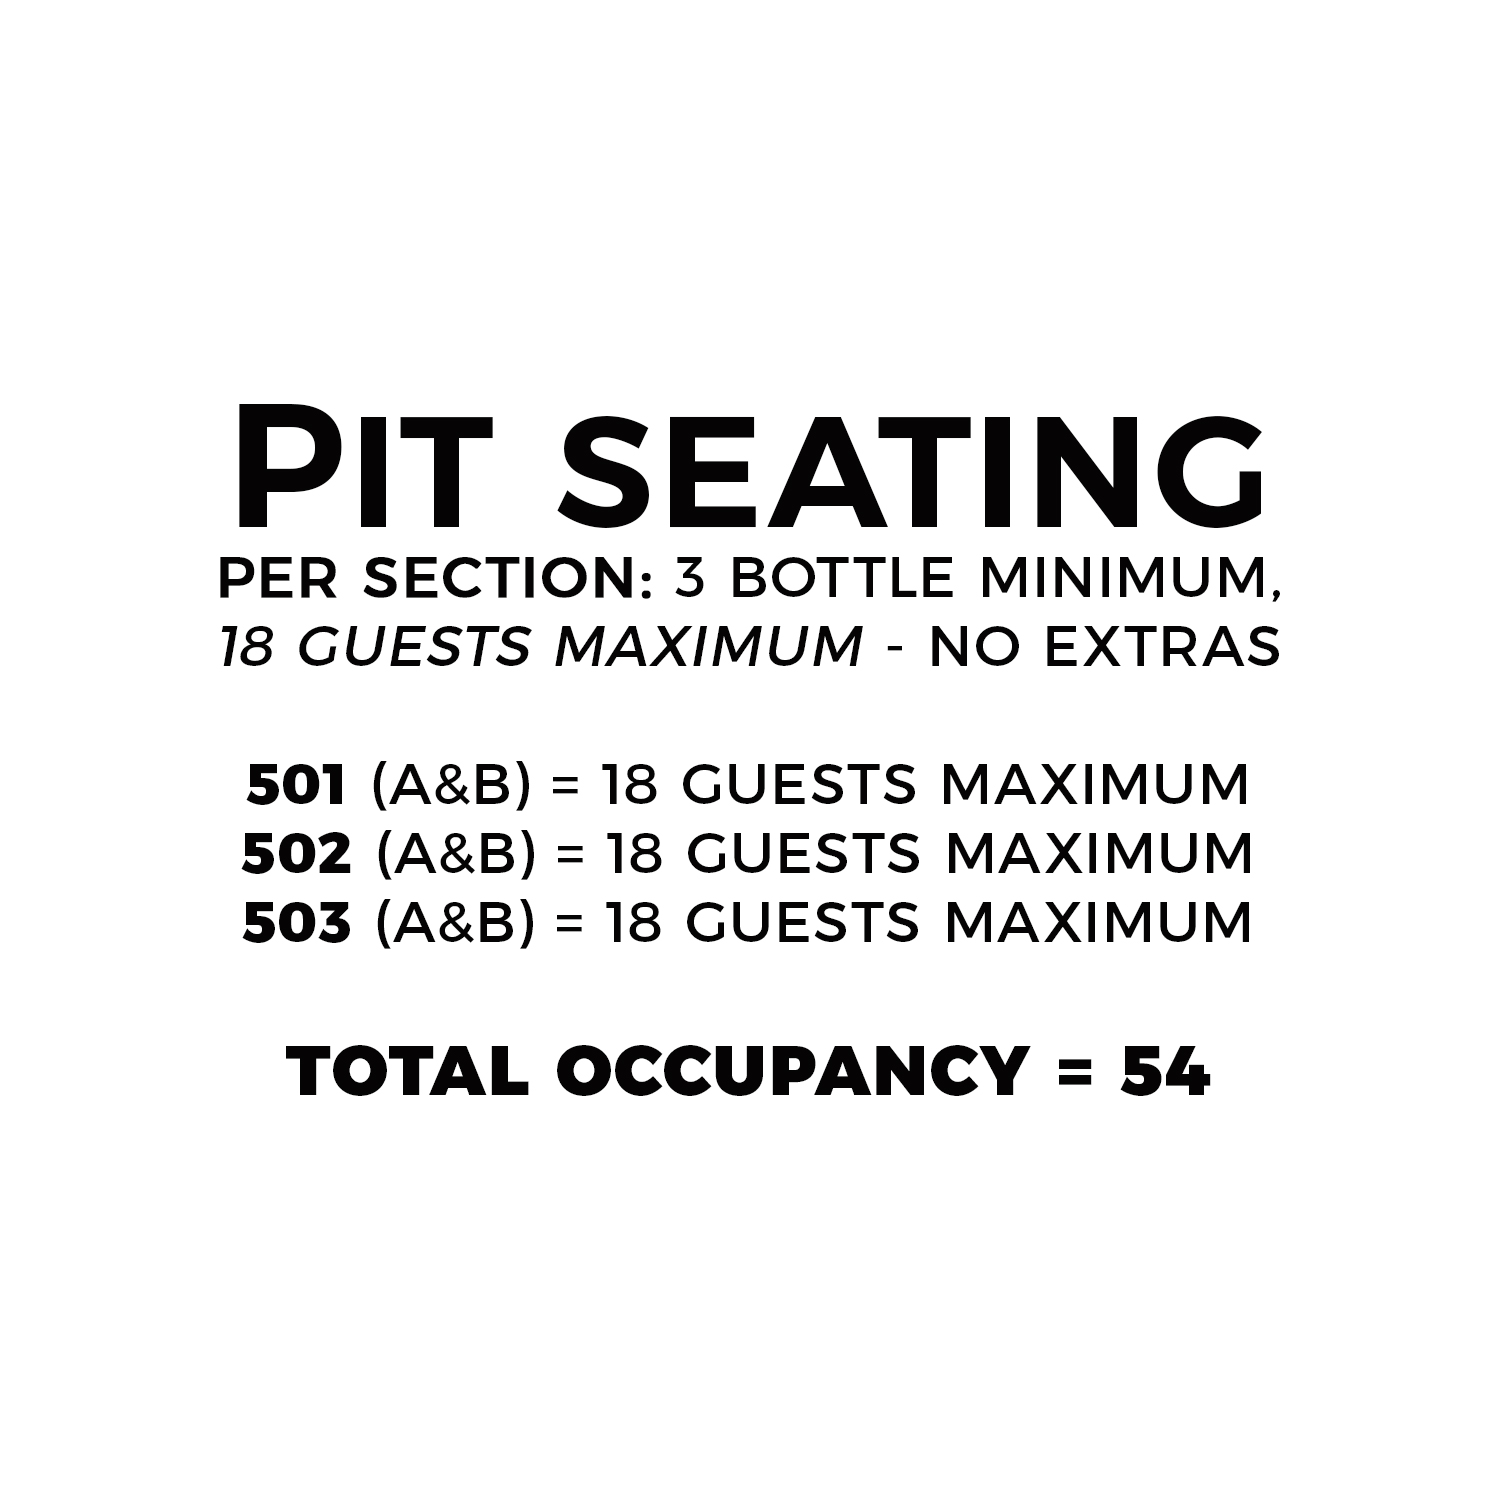 PIT-SEATING.jpg